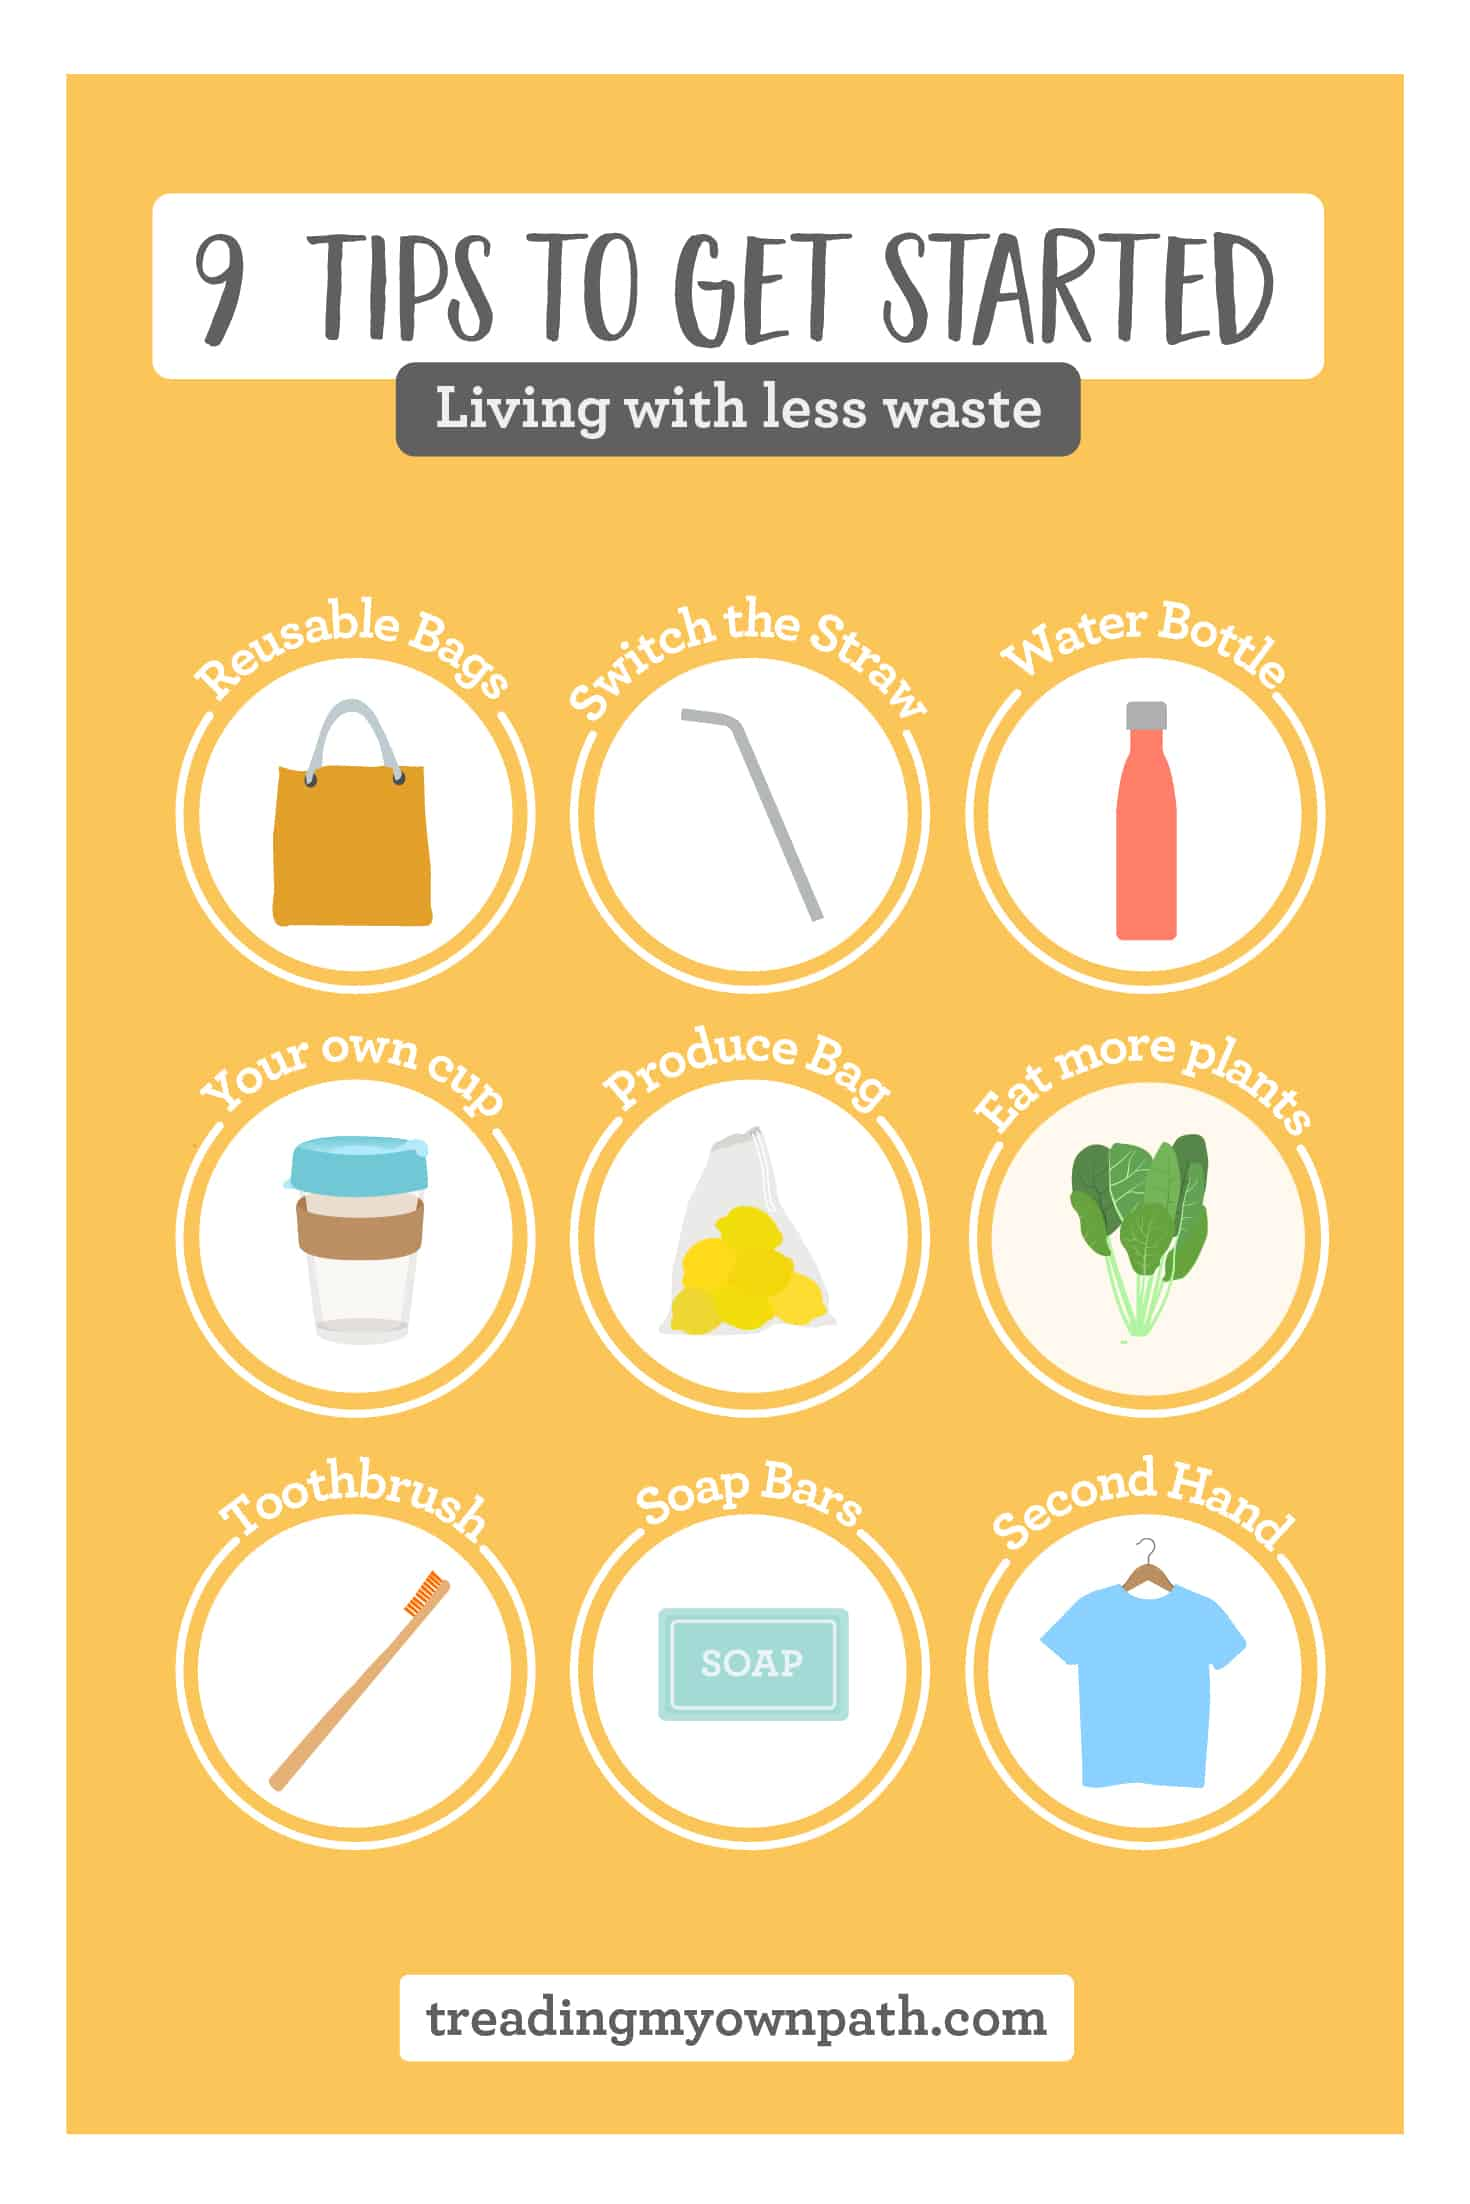 5 Tips for living with less waste and a free PDF download